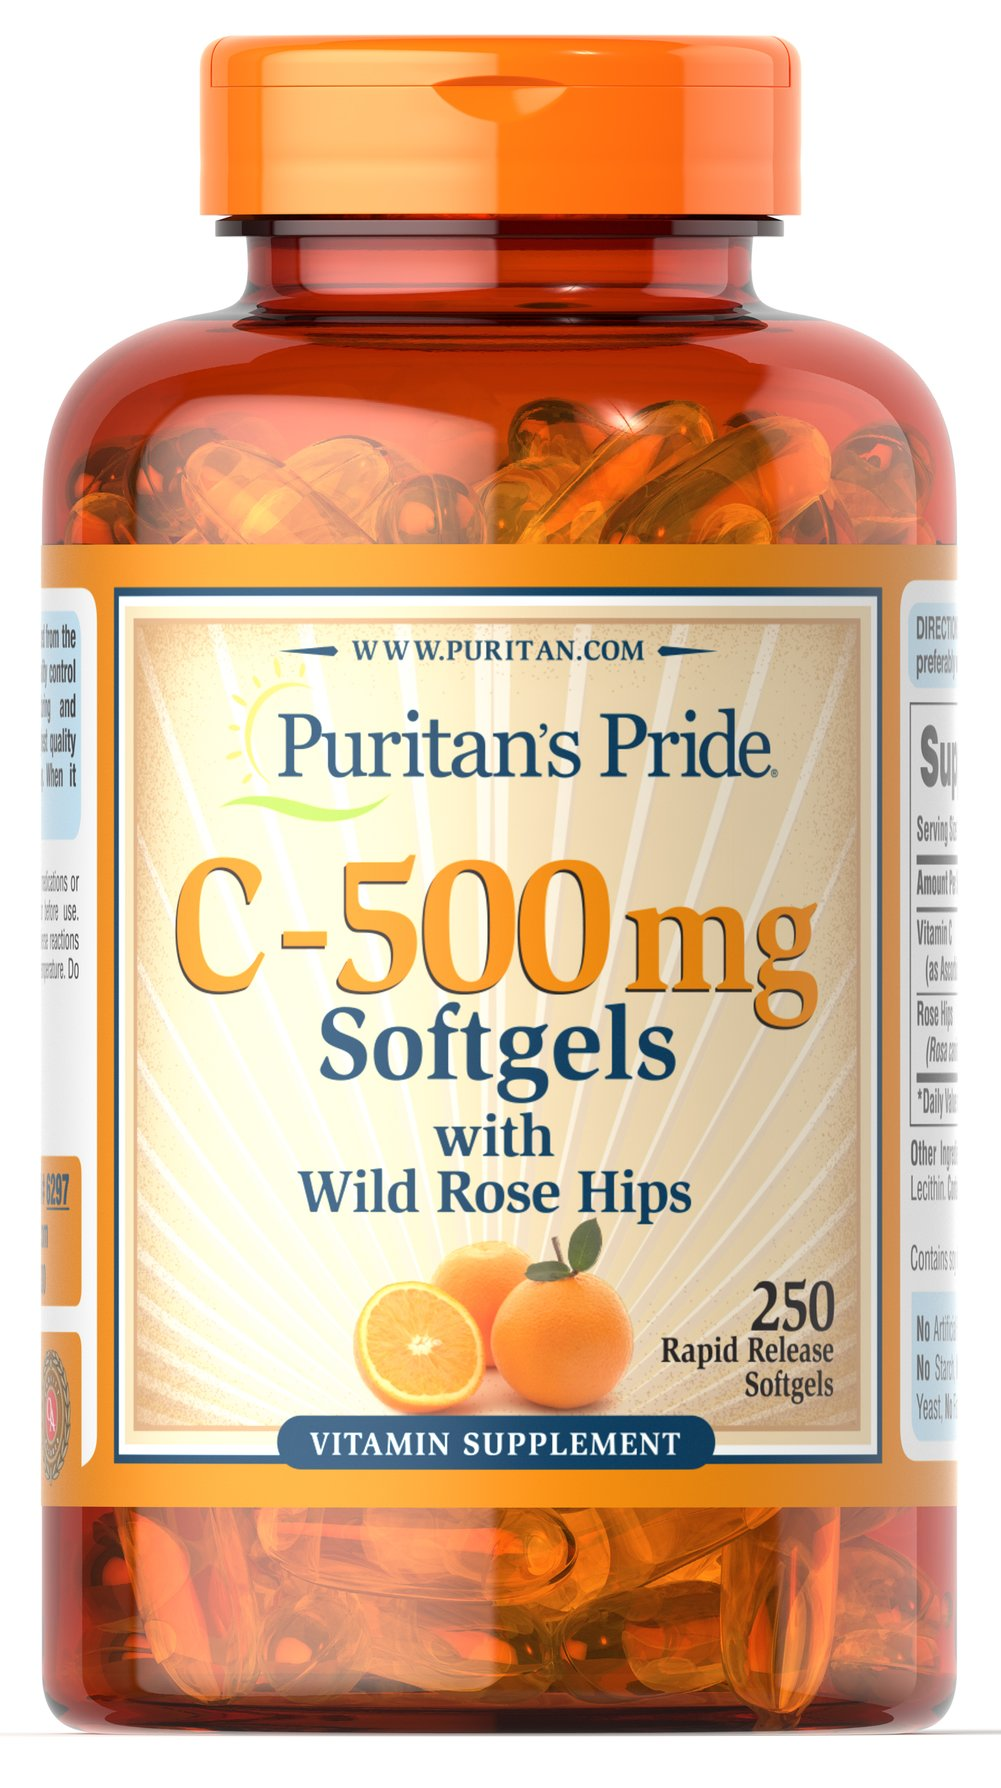 Vitamin C-500 mg with Rosehips <p>Vitamin C  is essential to many functions in the body and is one of the leading vitamins for immune support and helps fight cell-damaging free radicals.**   Our product also includes Rose Hips, which help the body absorb and utilize Vitamin C.**</p><p>Offers superior antioxidant support.**</p><p>Good oral health is linked to cardiovascular health. Vitamin C helps to support both healthy gums and circulatory health.**</p><p&